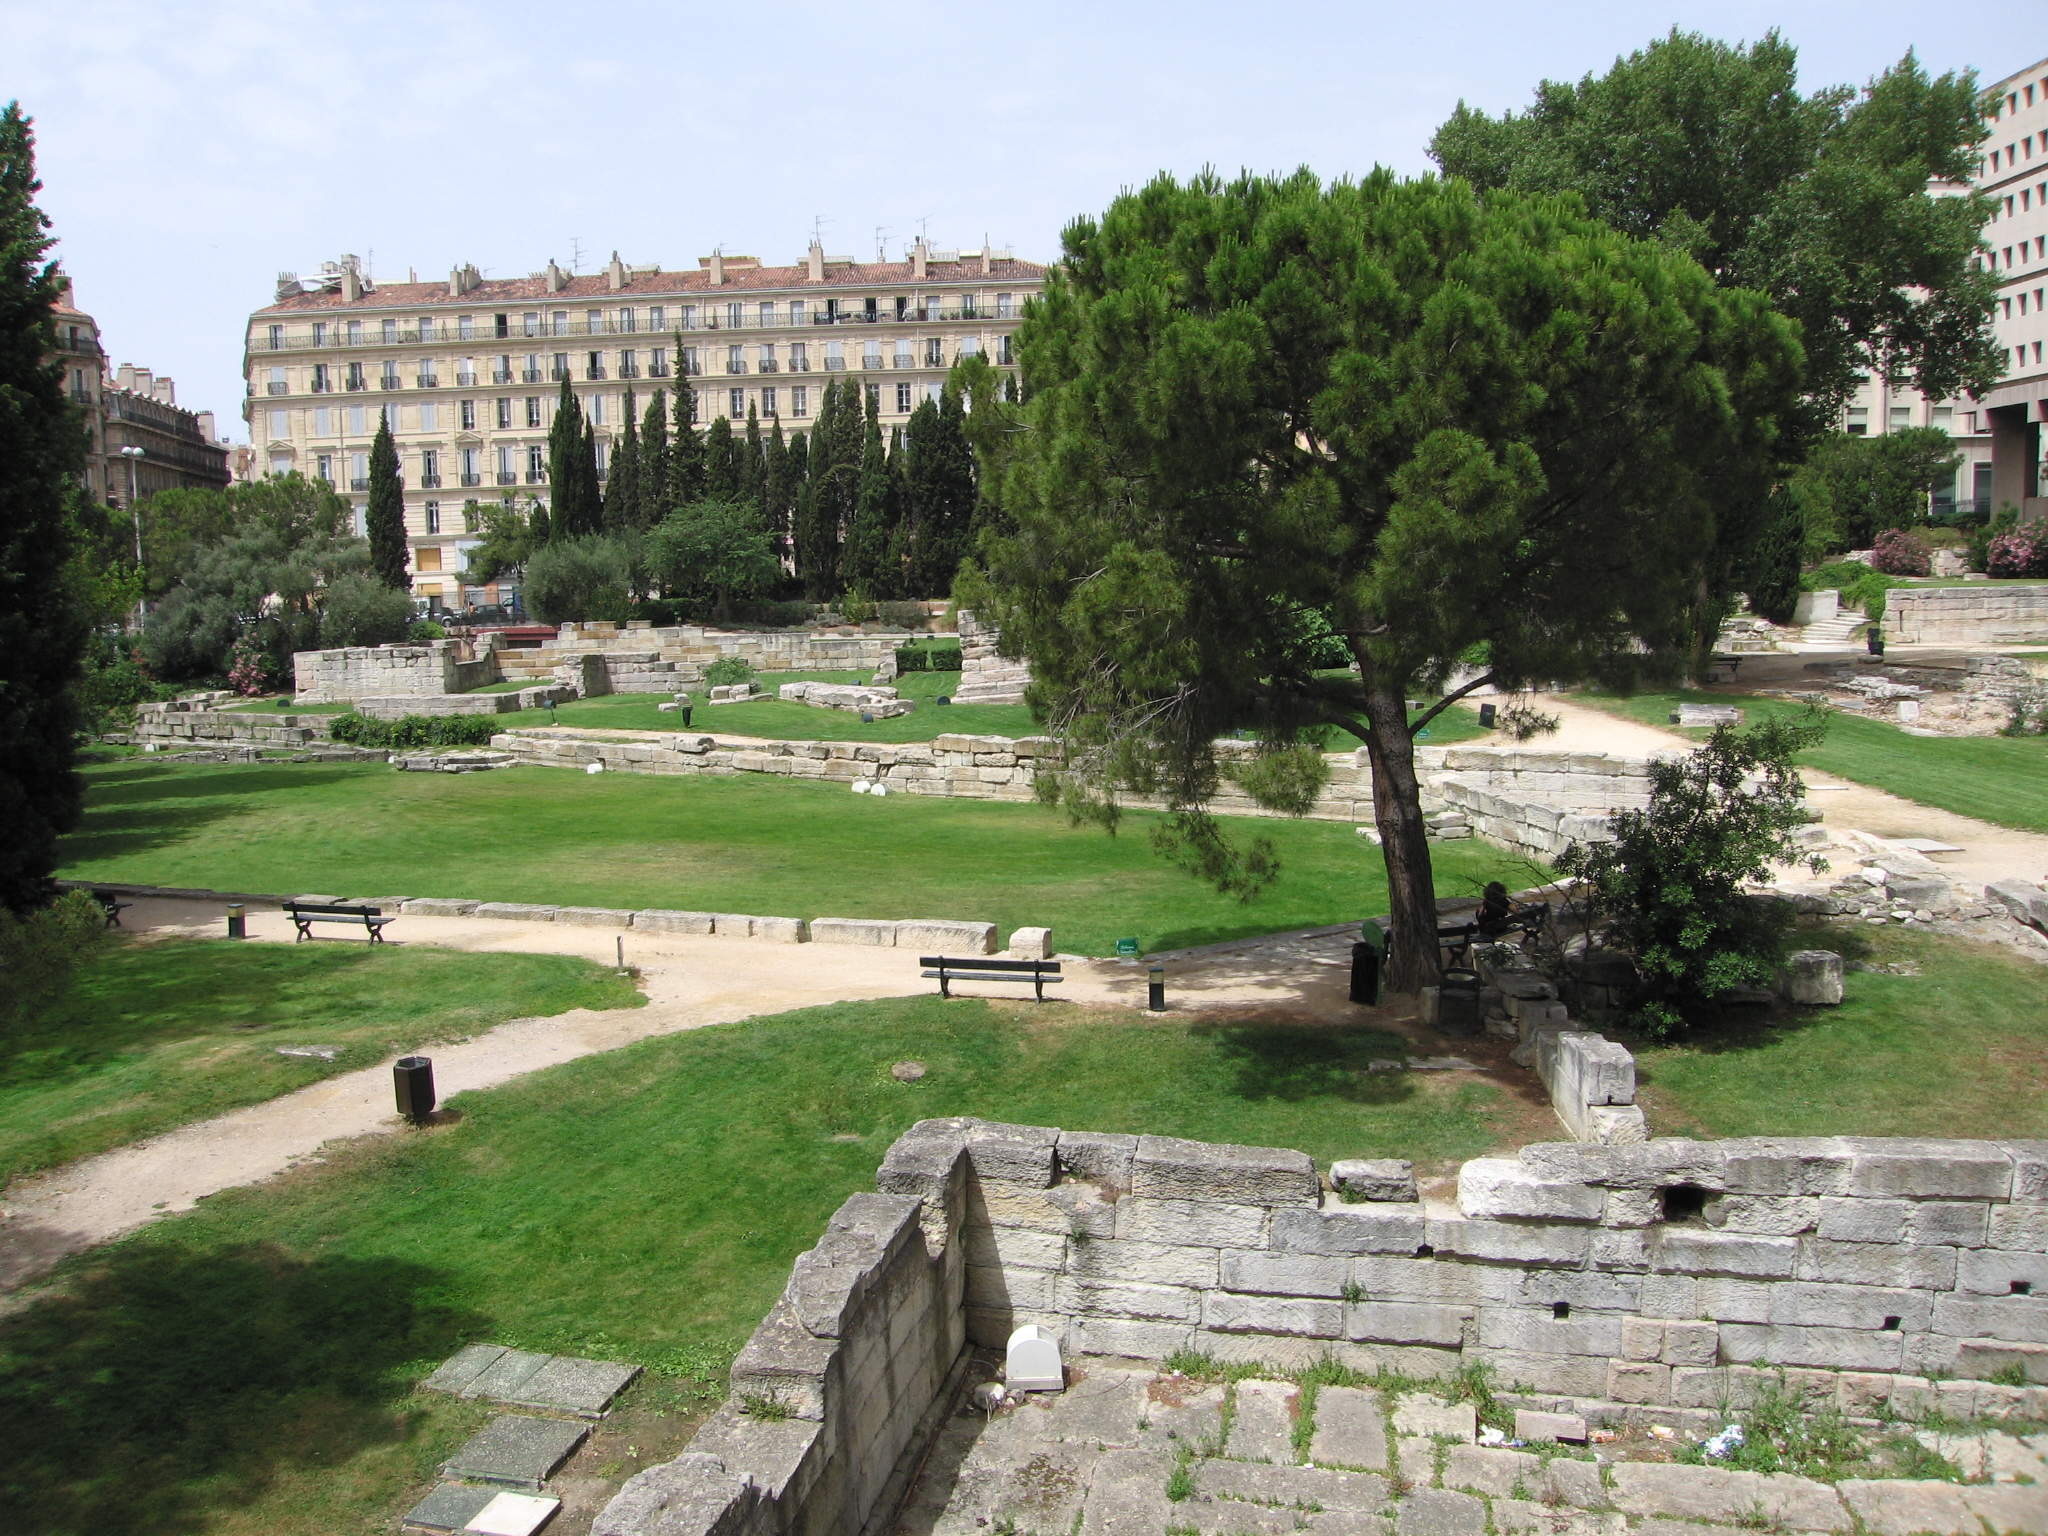 File:Marseille - Le jardin des vestiges.JPG - Wikipedia, the free ...